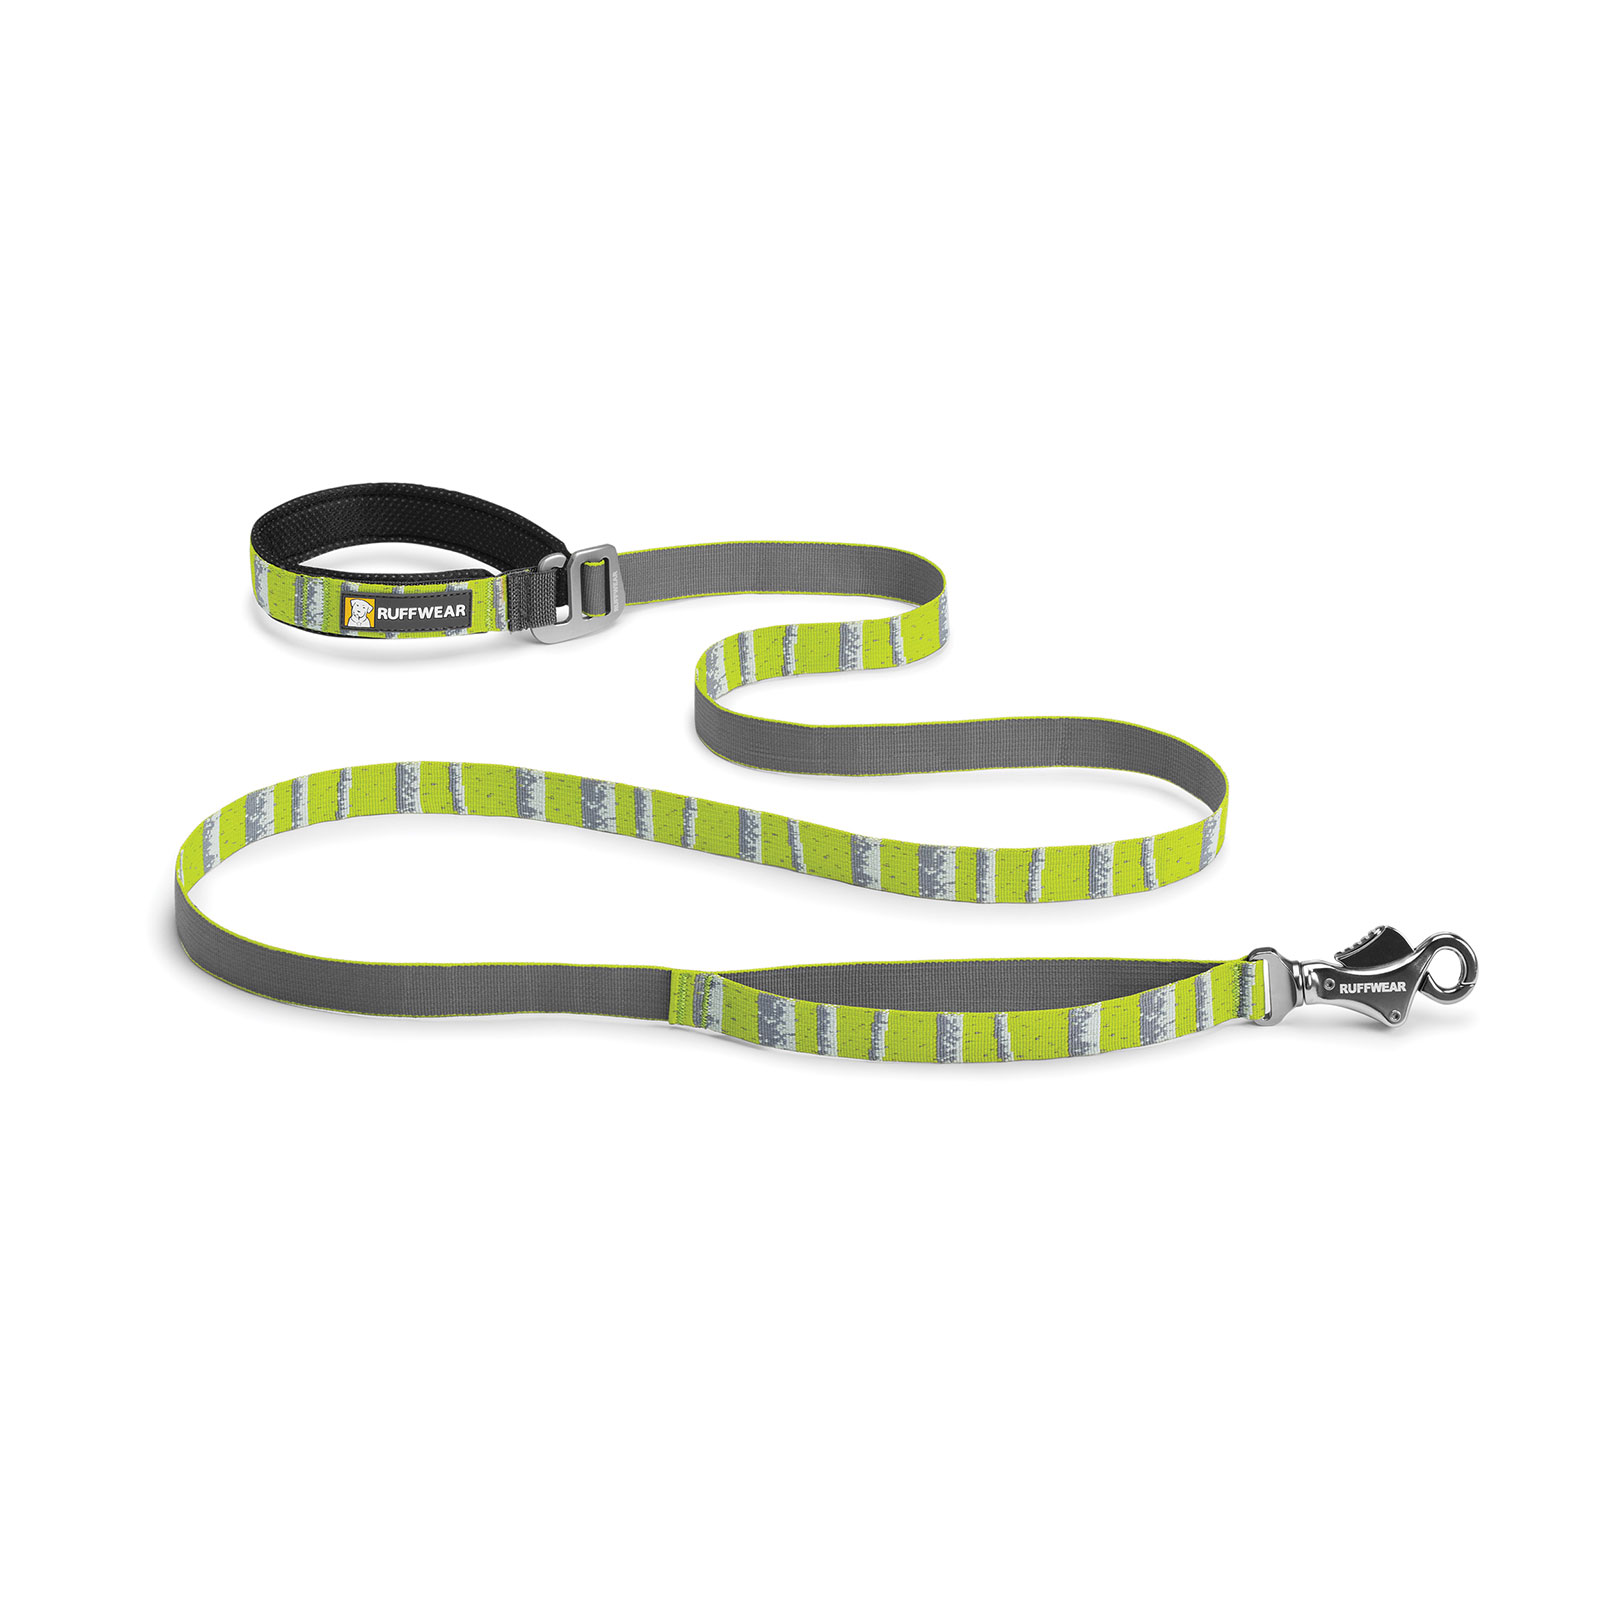 Hands Free Convertible Dog Walking Waist Belt And Leash